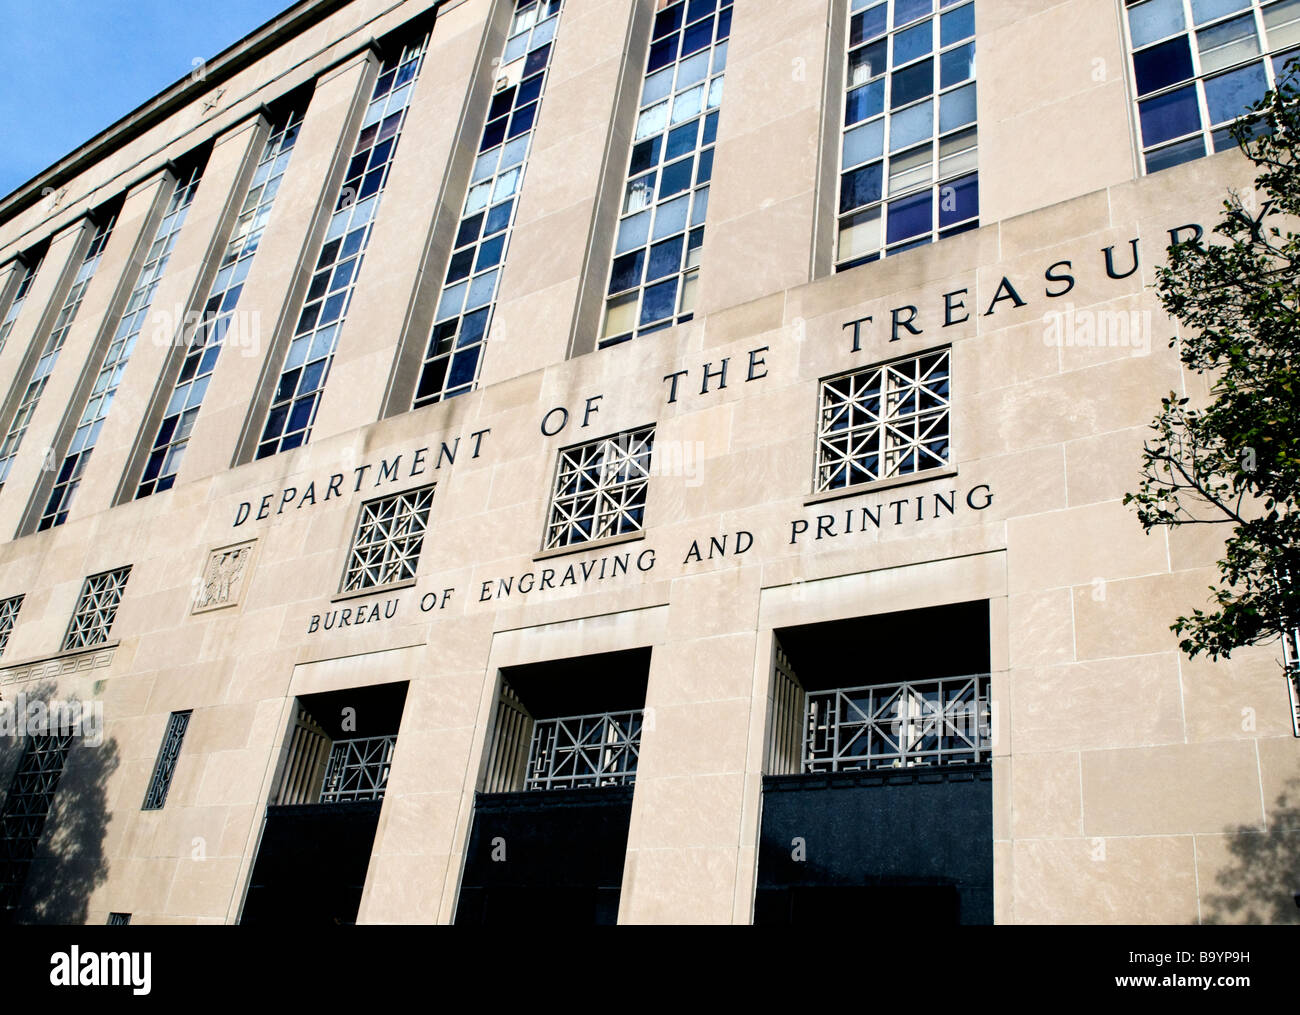 Department of the Treasury Bureau of Engraving and Printing in Washington DC - Stock Image